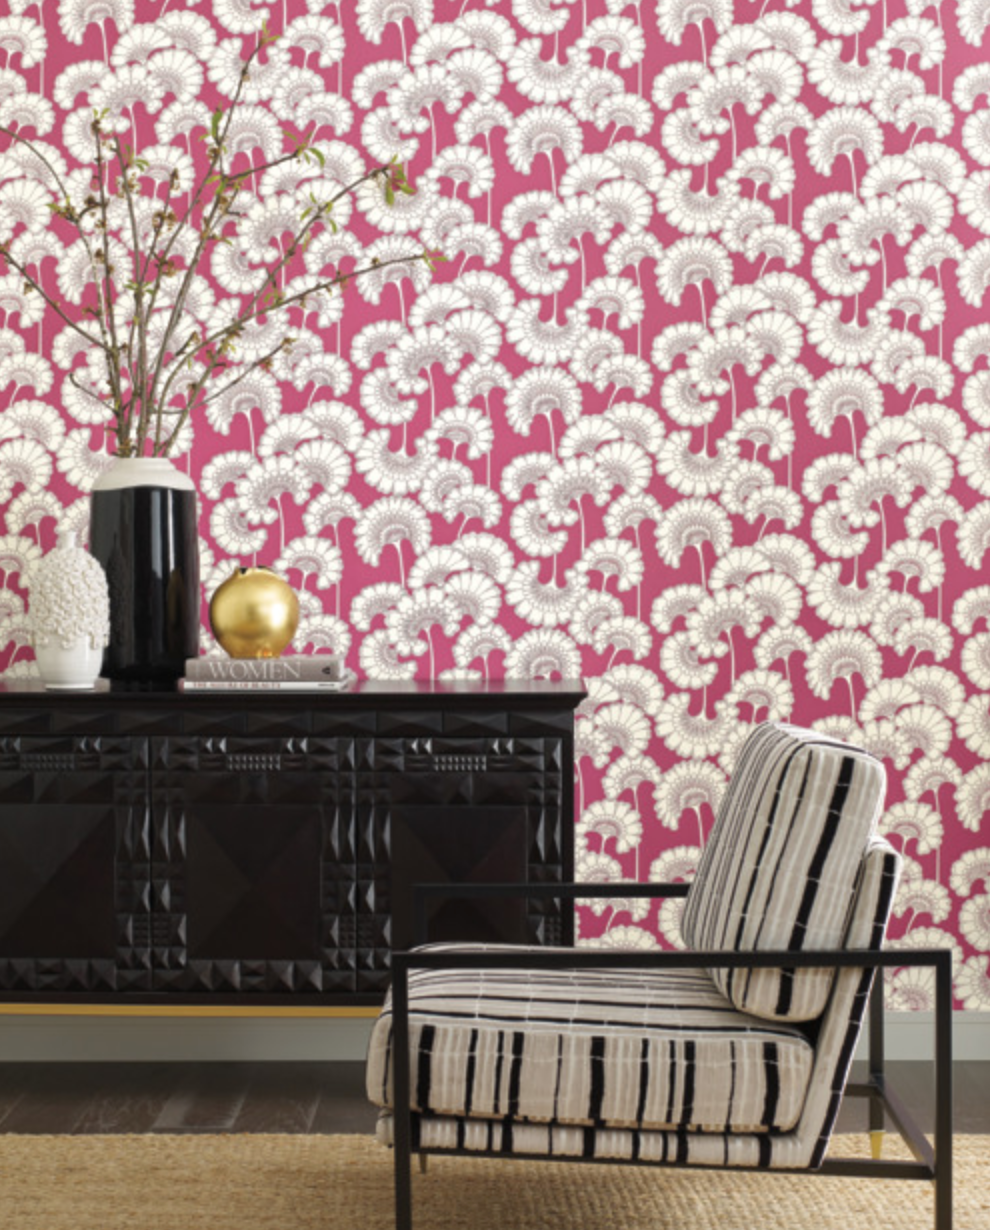 Japanese Floral Wallpaper Urban American Dry Goods Co